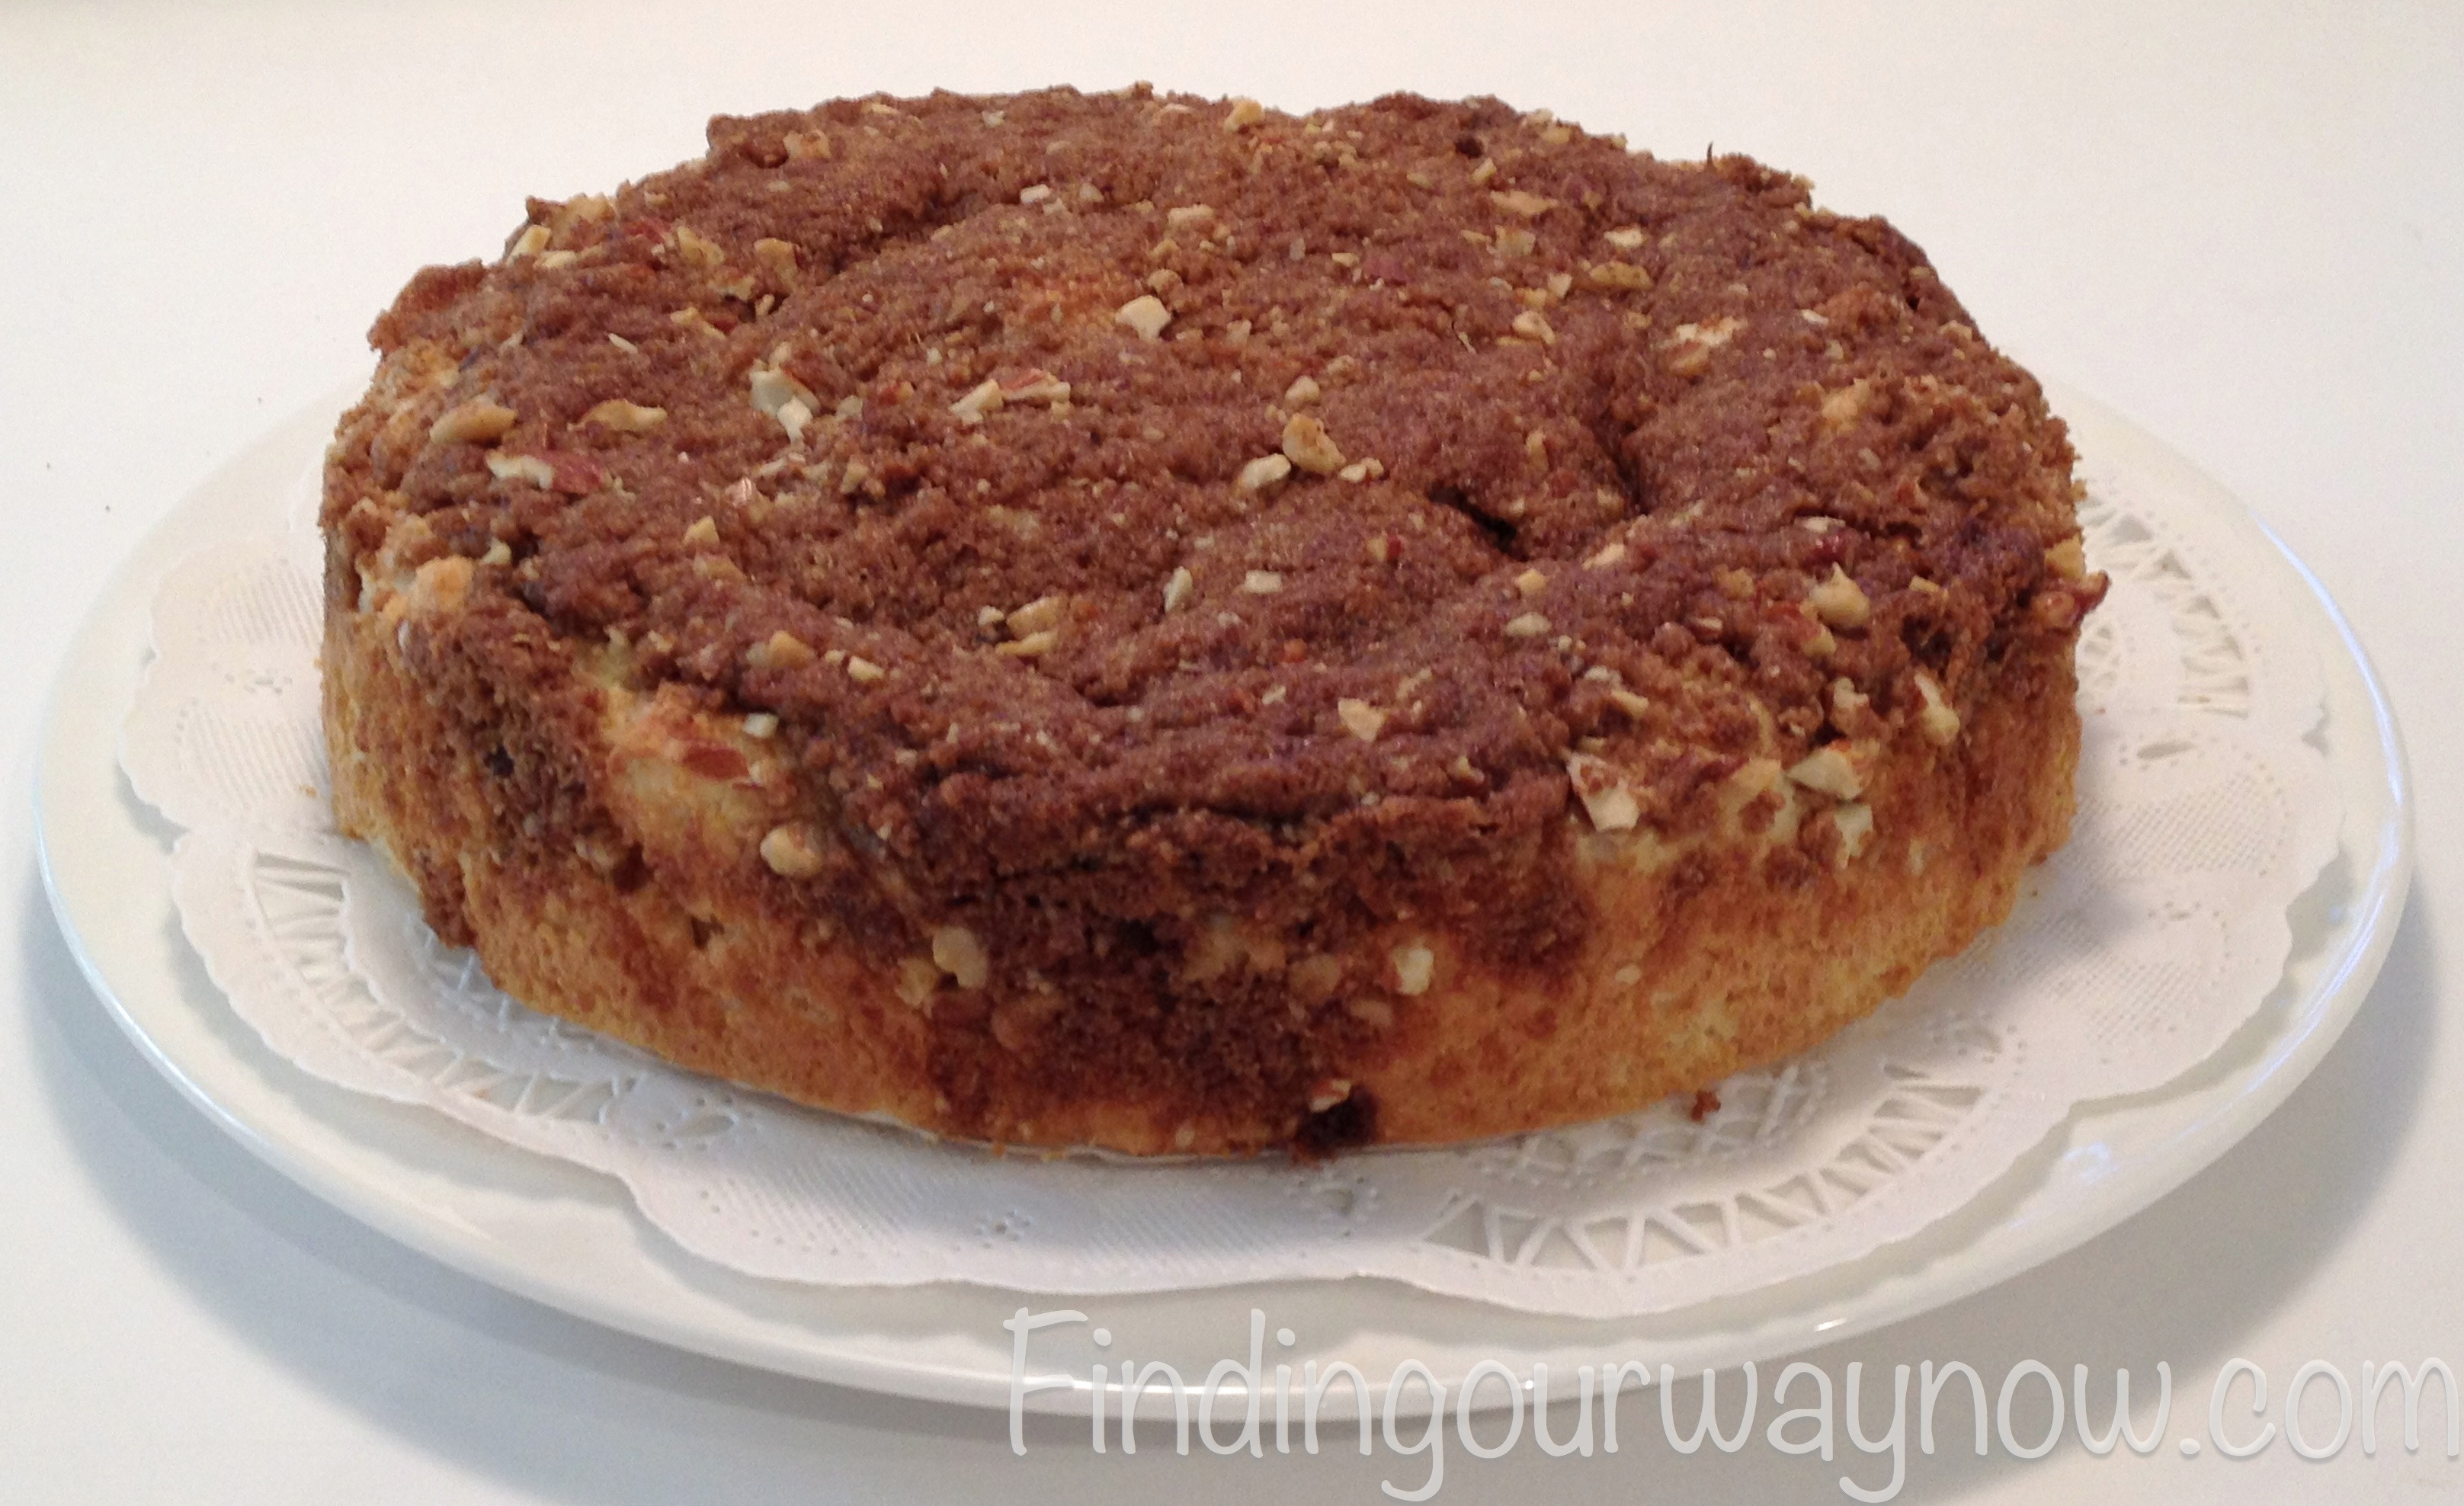 Breakfast Coffee Cake  Easy Breakfast Coffee Cake Recipe Finding Our Way Now